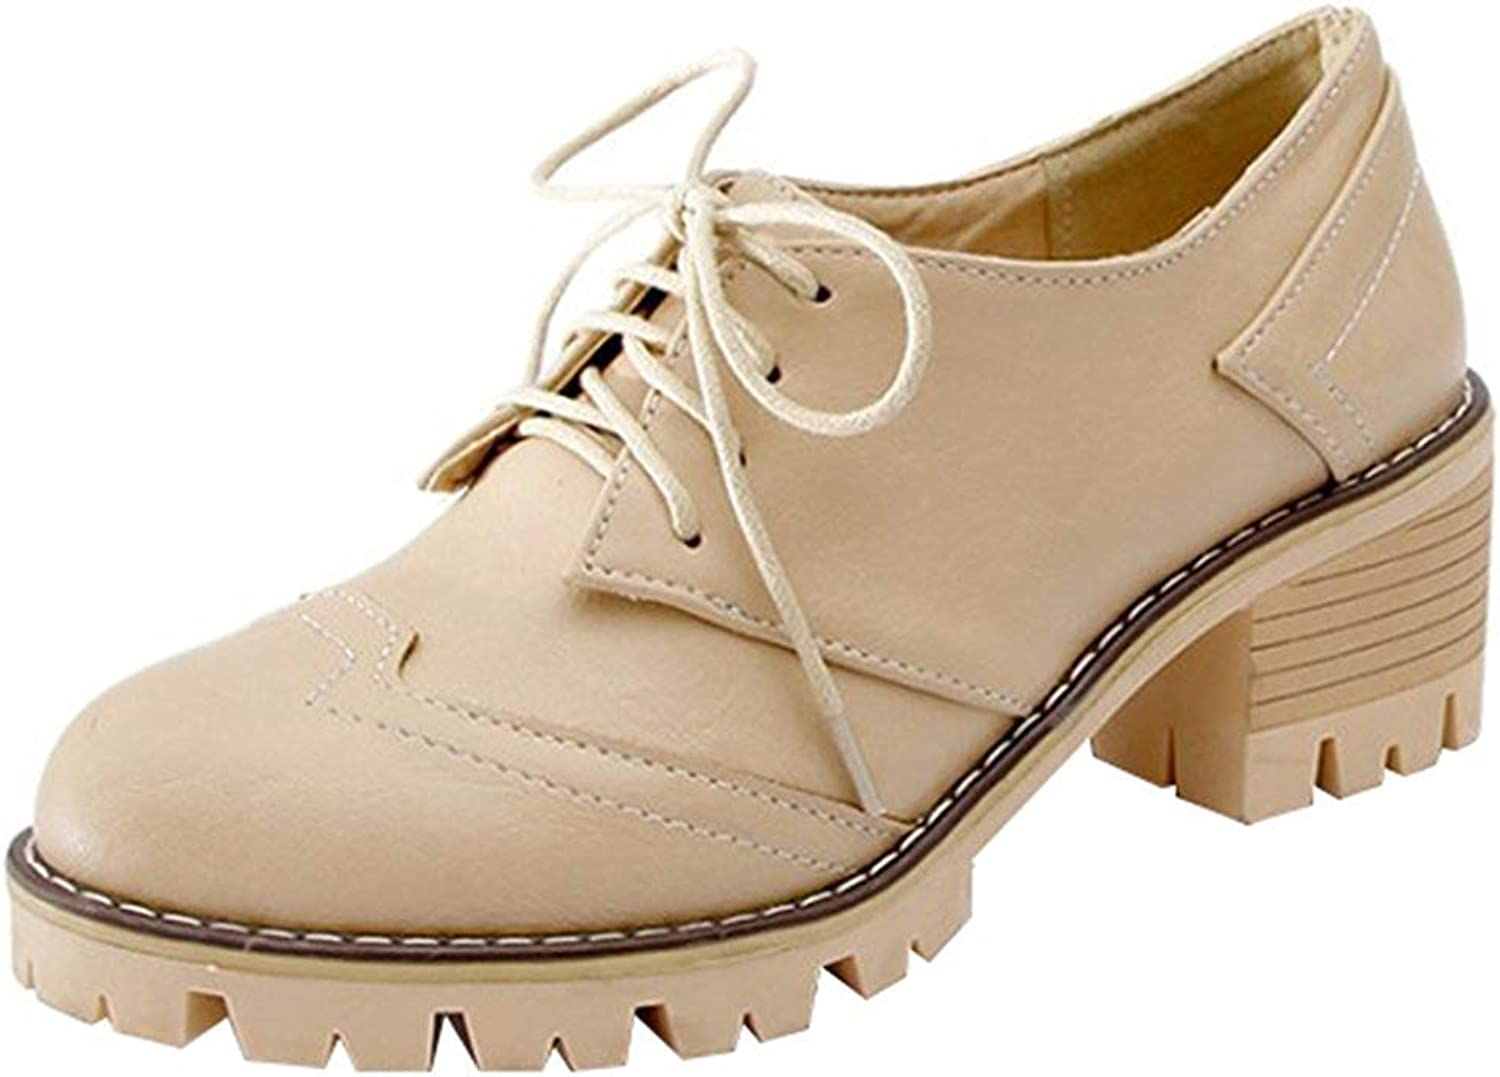 Ghapwe Women's Trendy Round Toe Low Top Stacked Block Medium Heels Lace Up Oxfords shoes Apricot 5.5 M US